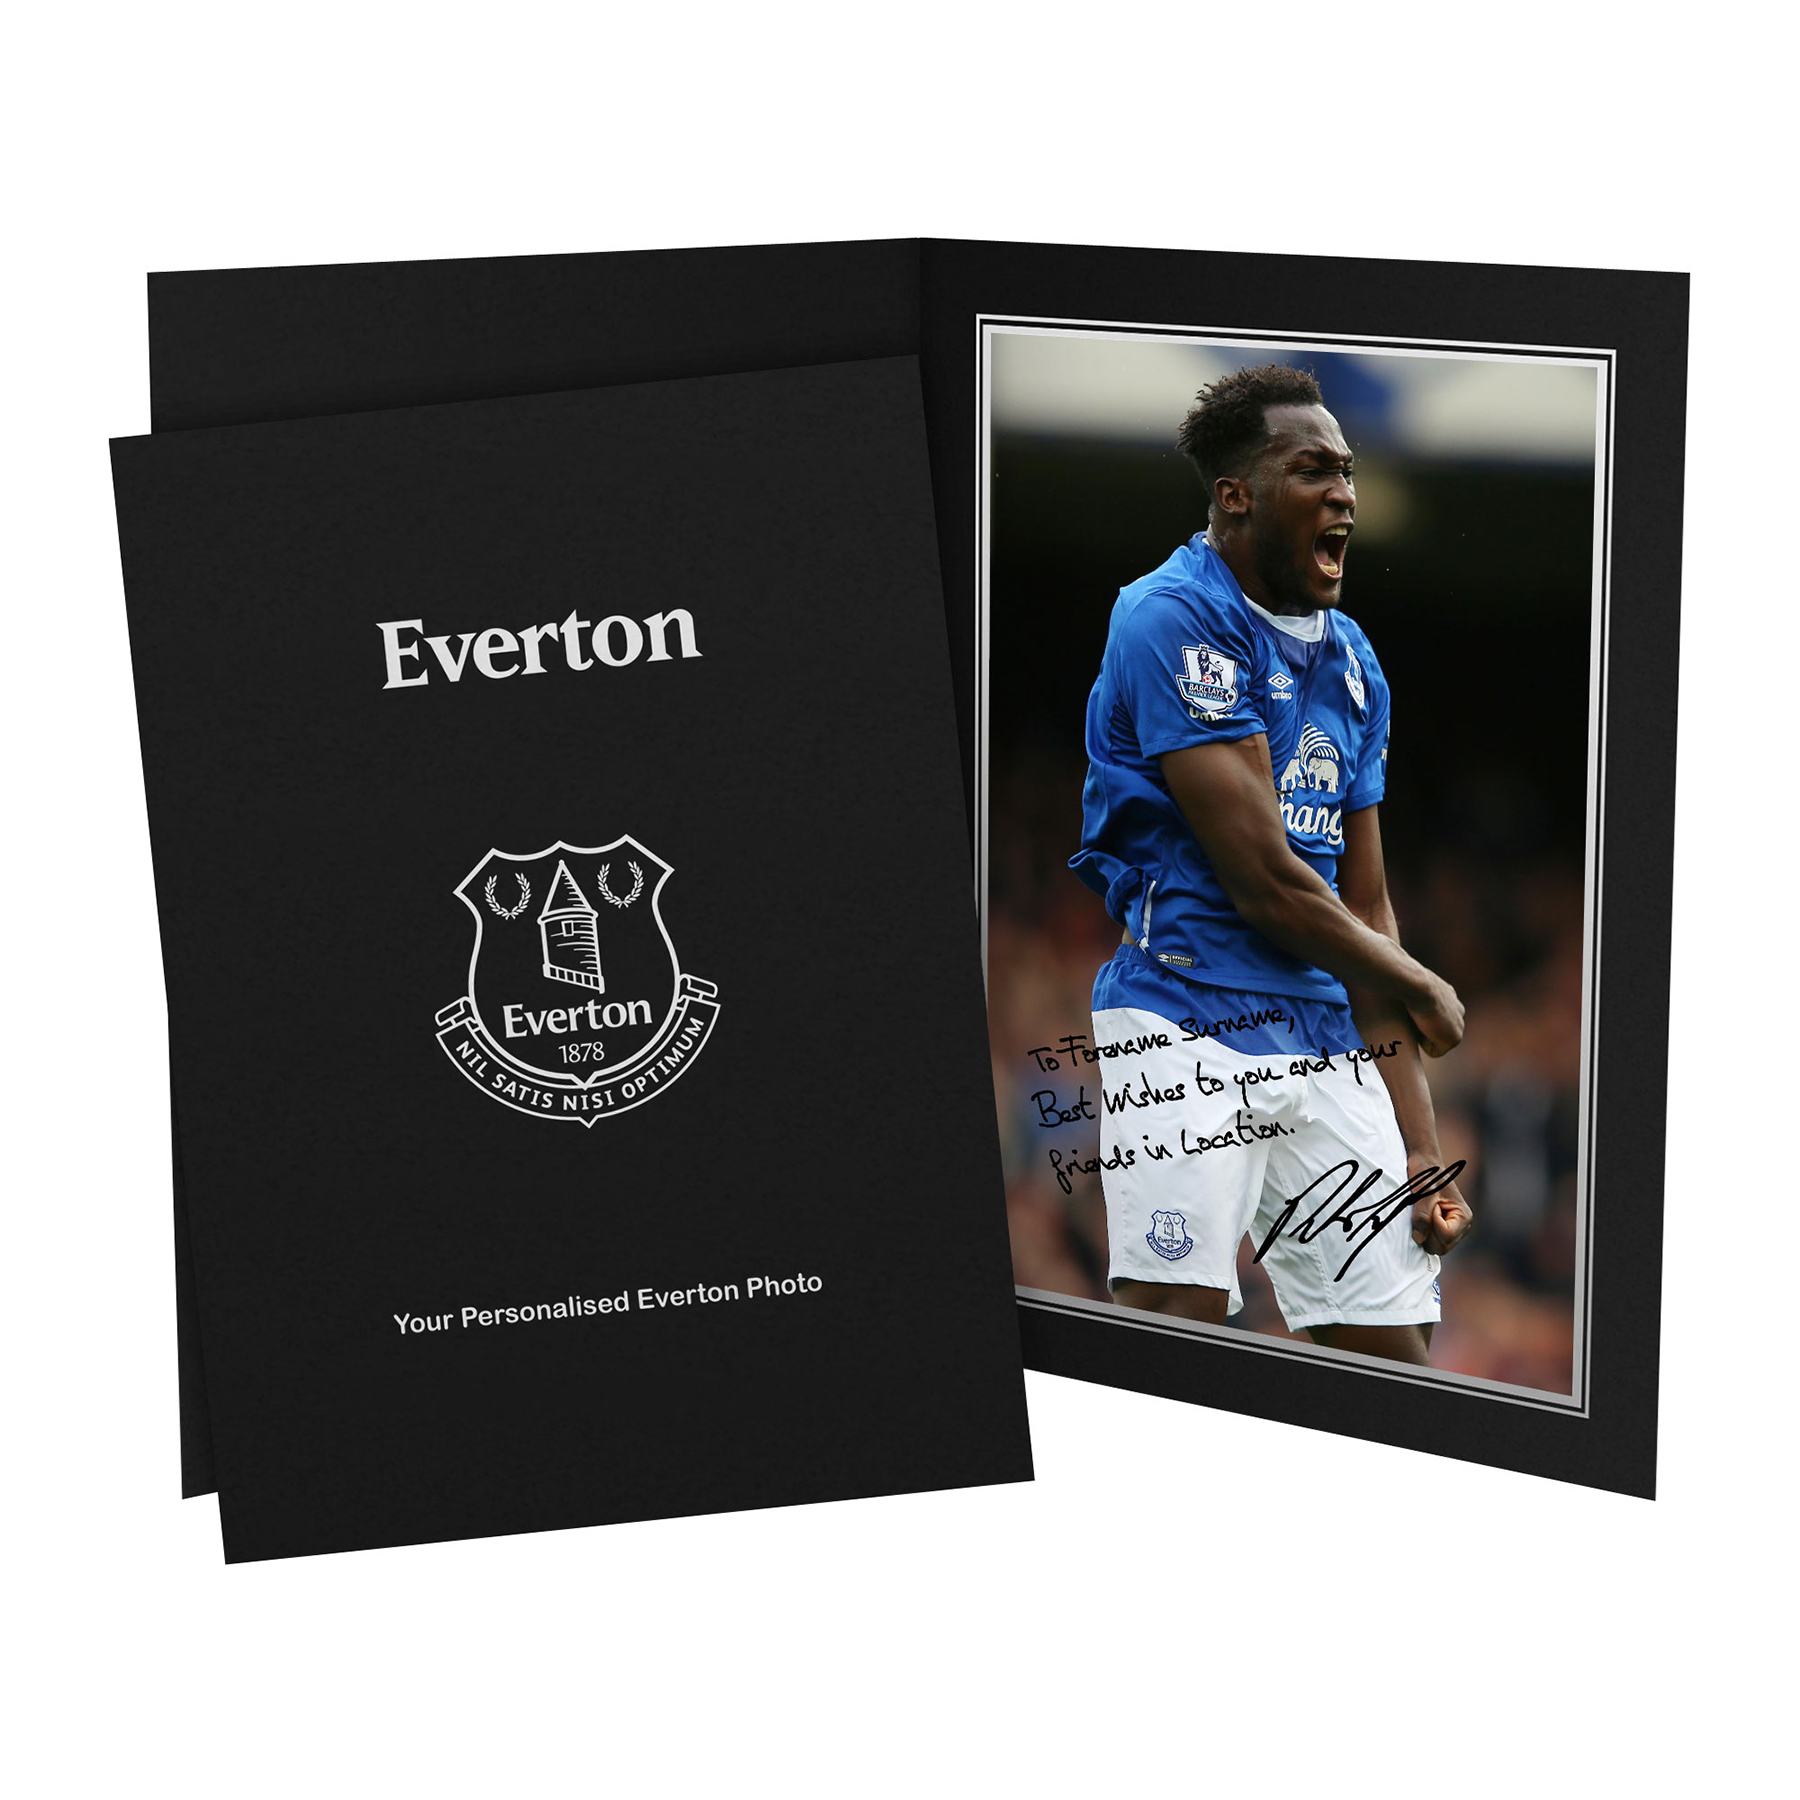 Everton Personalised Signature Photo in Presentation Folder - Lukaku